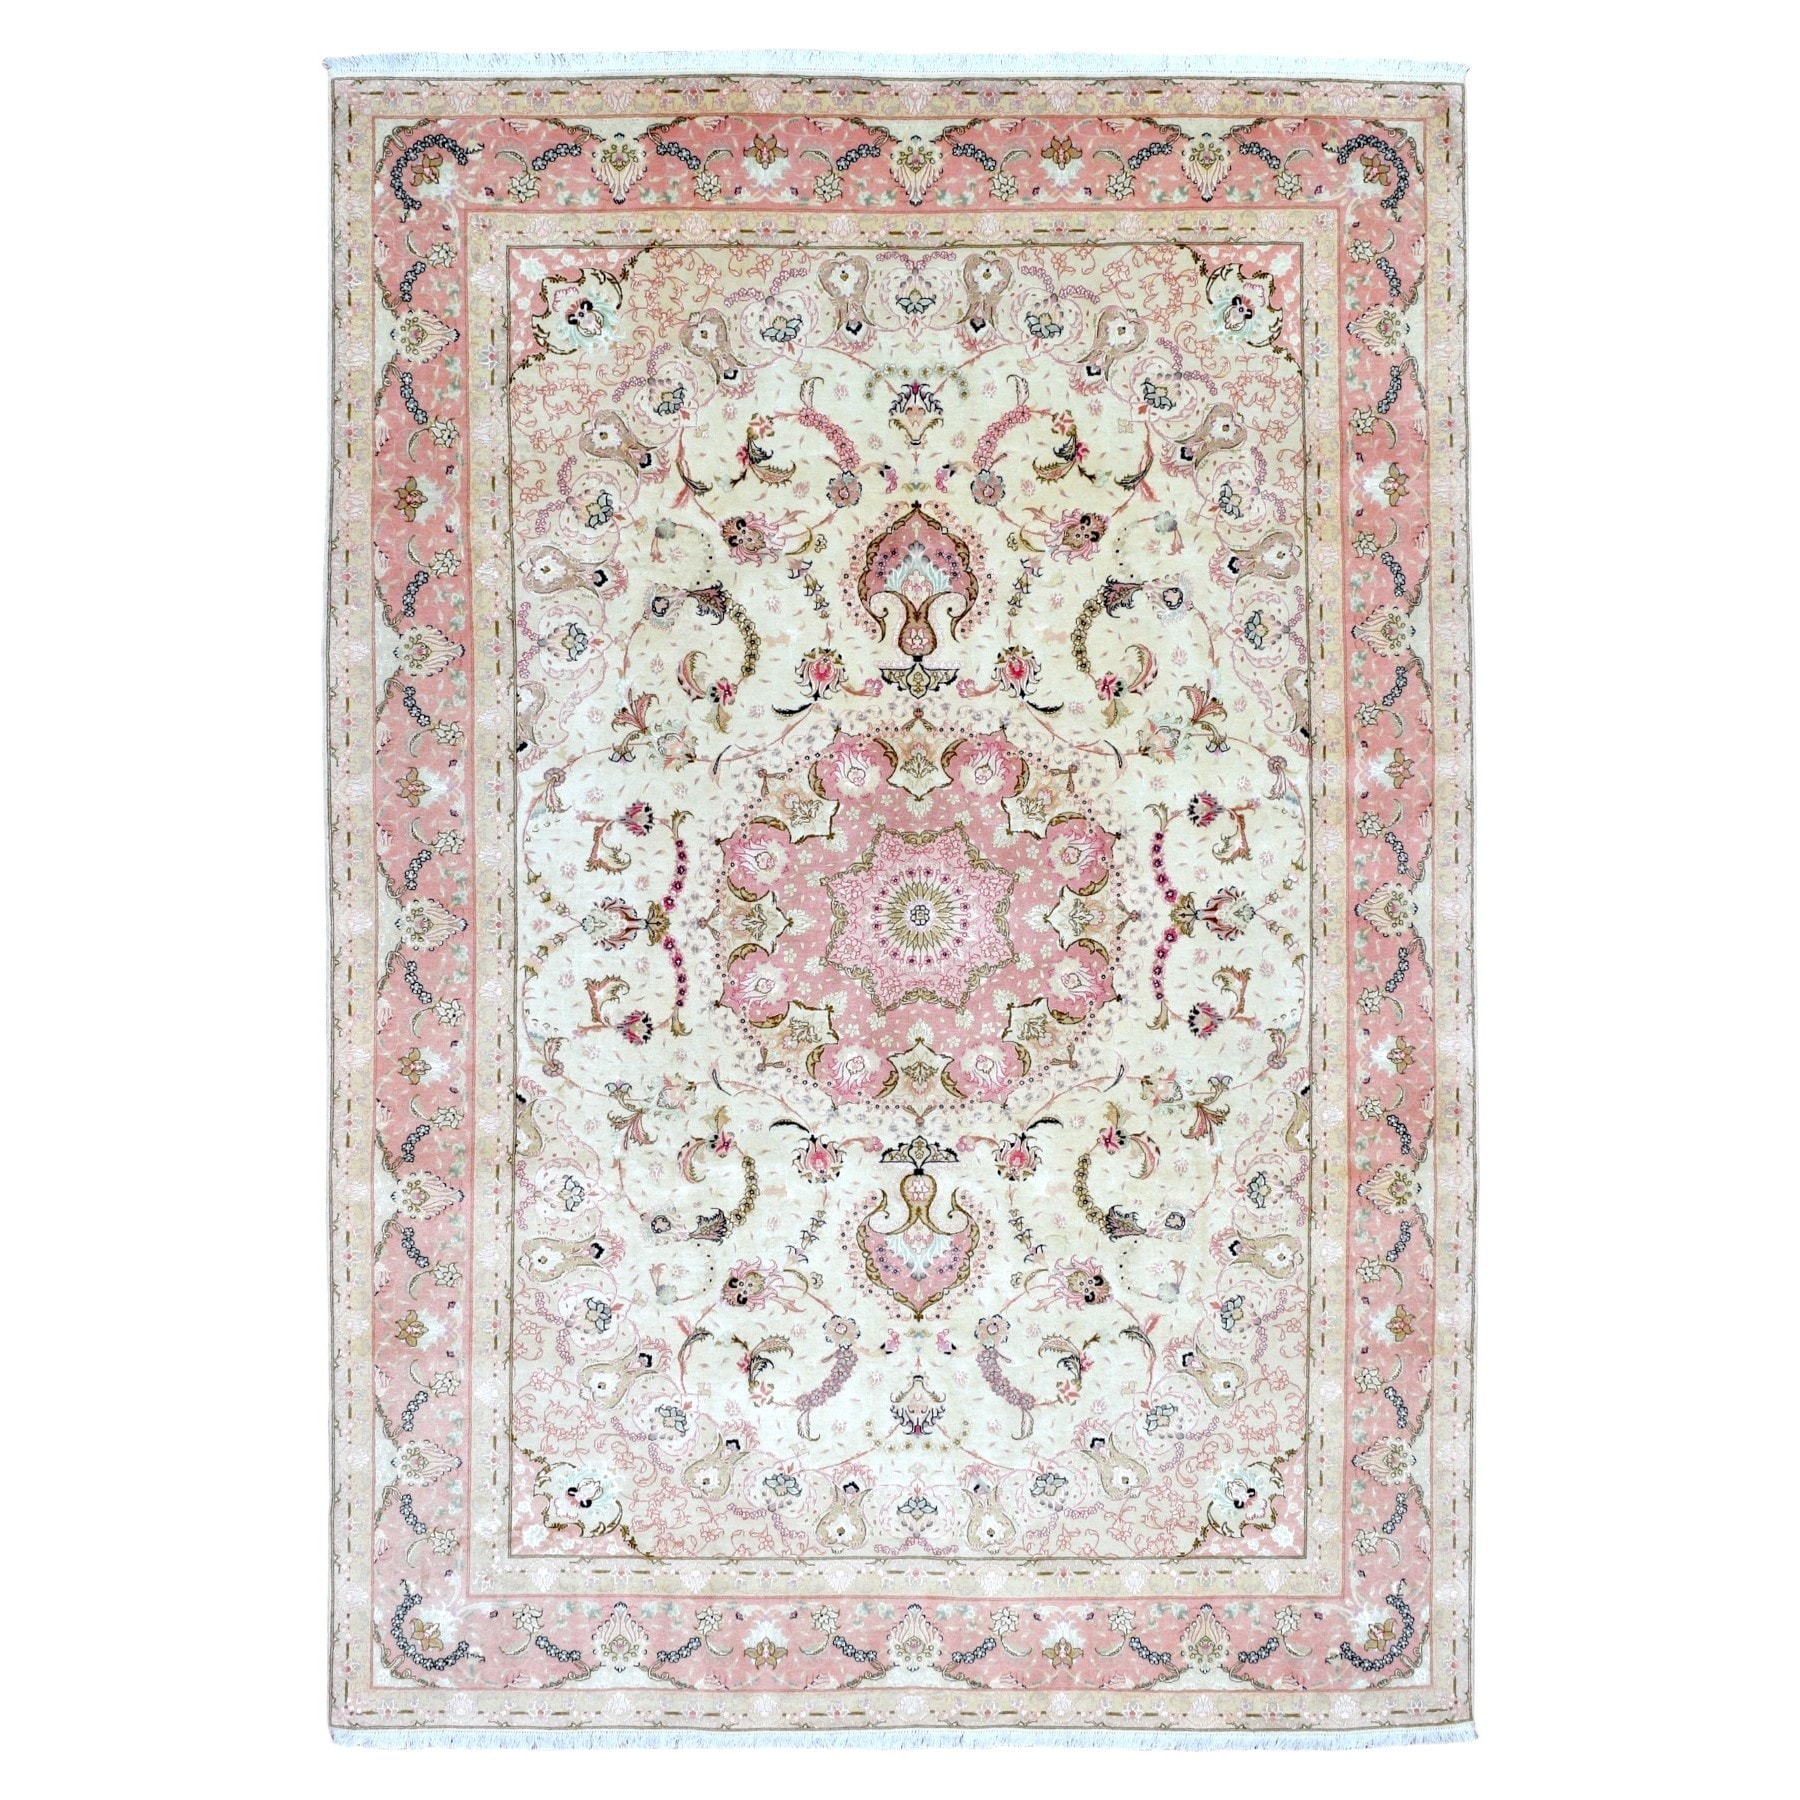 Decor Oriental Chic Finerugcollection Hand Knotted Extra Fine Persian Tabriz Pink Wool Oriental Rug With Silk Flowers